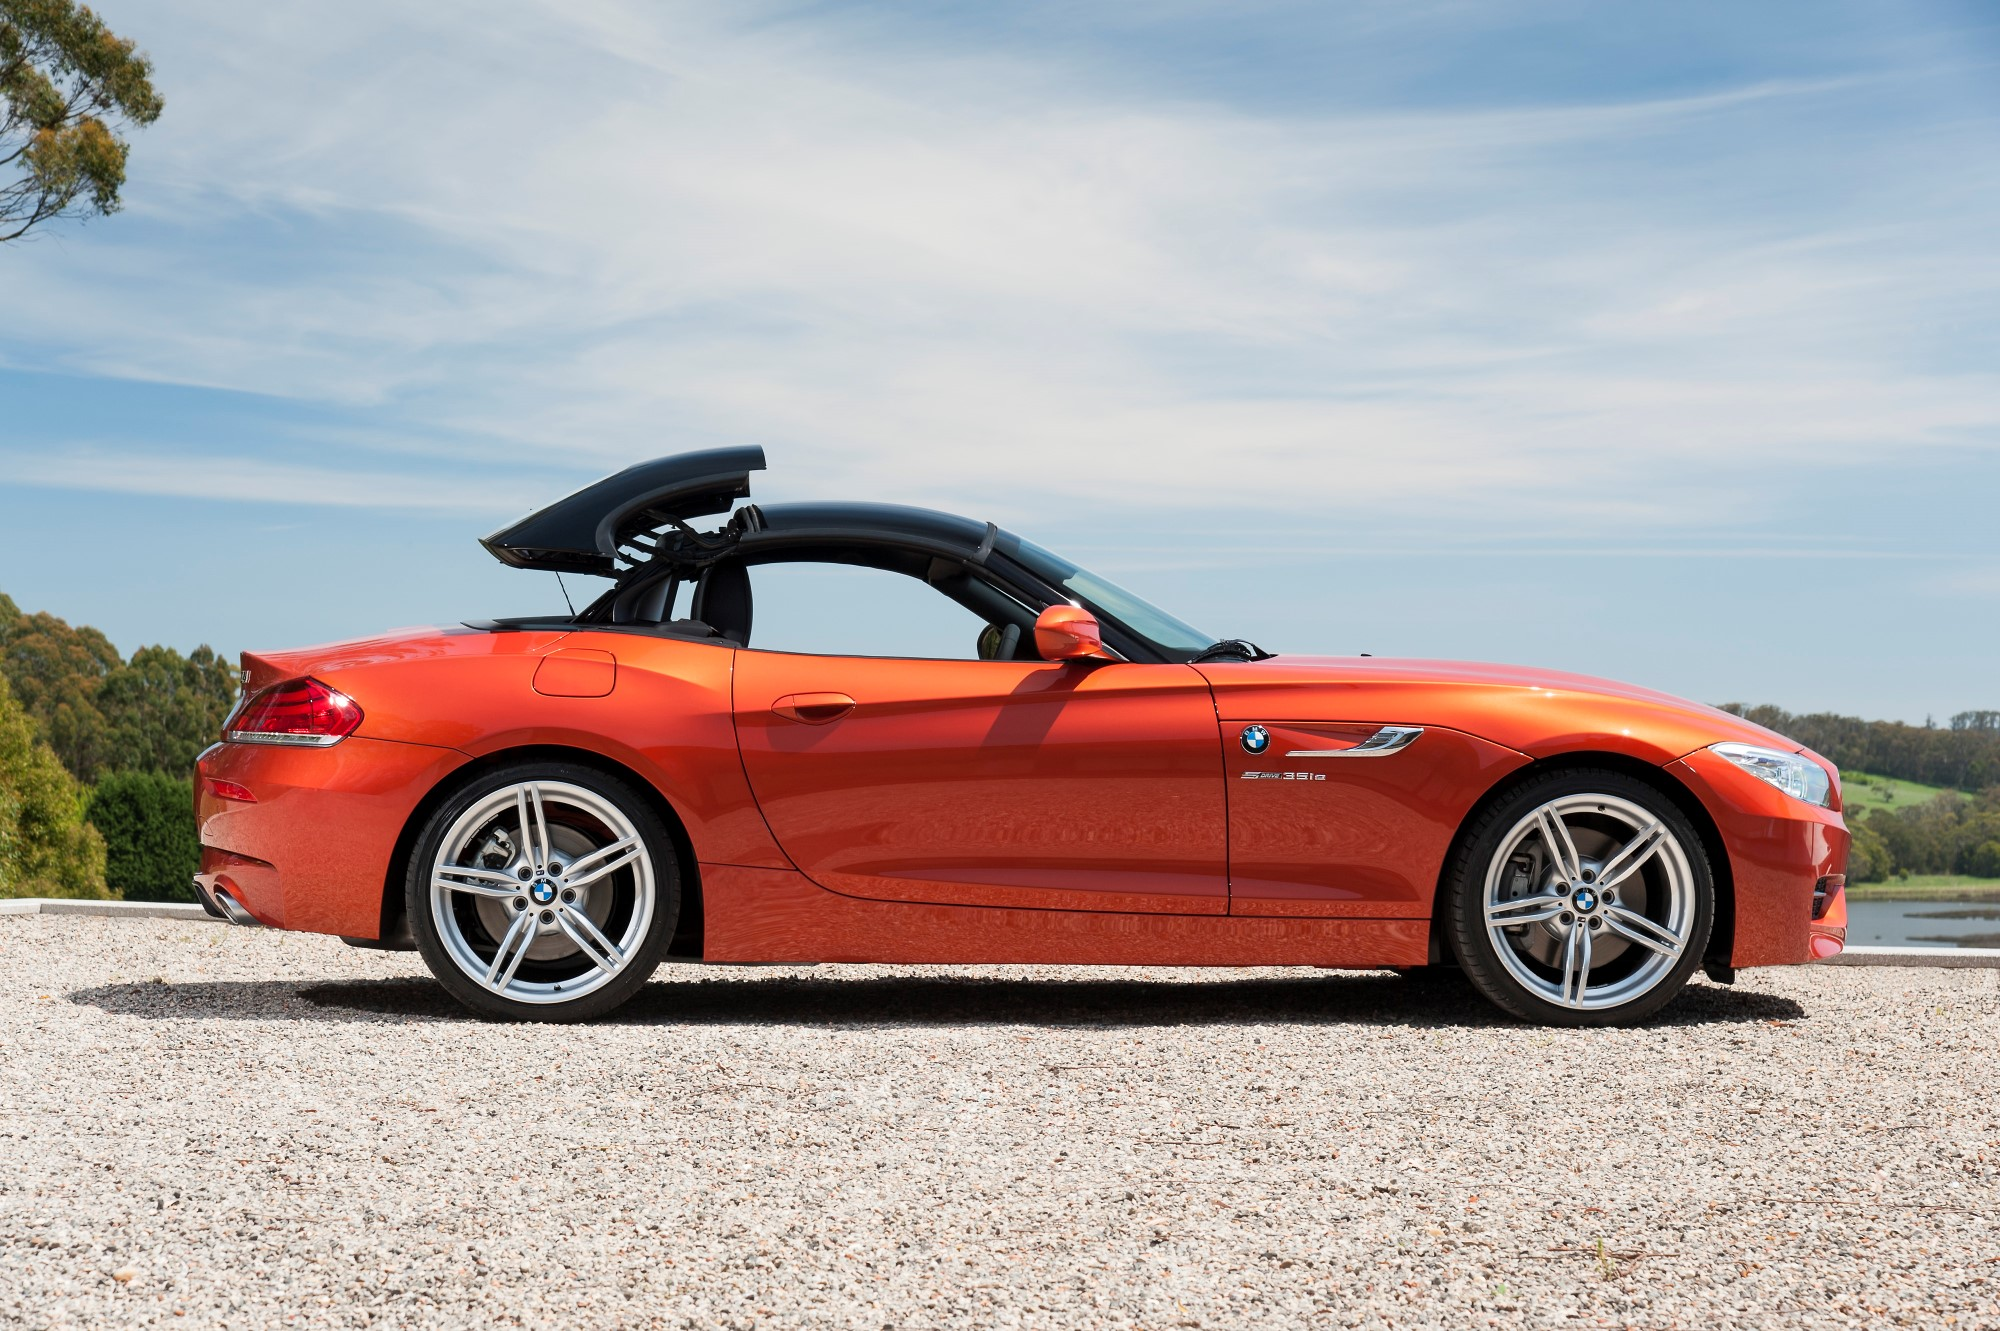 2014 Bmw Z4 Review Ratings Specs Prices And Photos The Car Connection